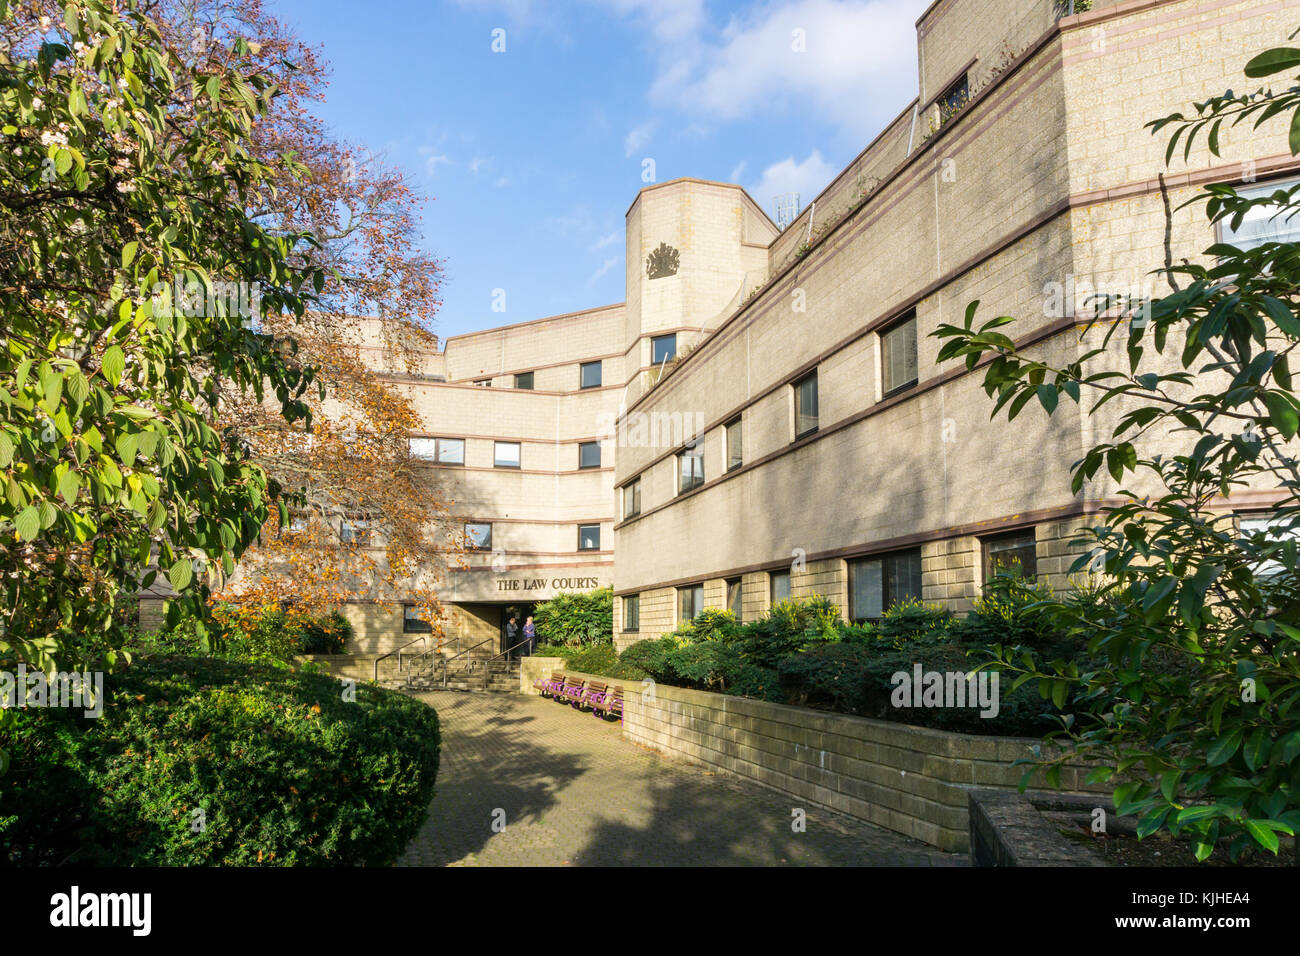 Croydon Law Courts - Stock Image